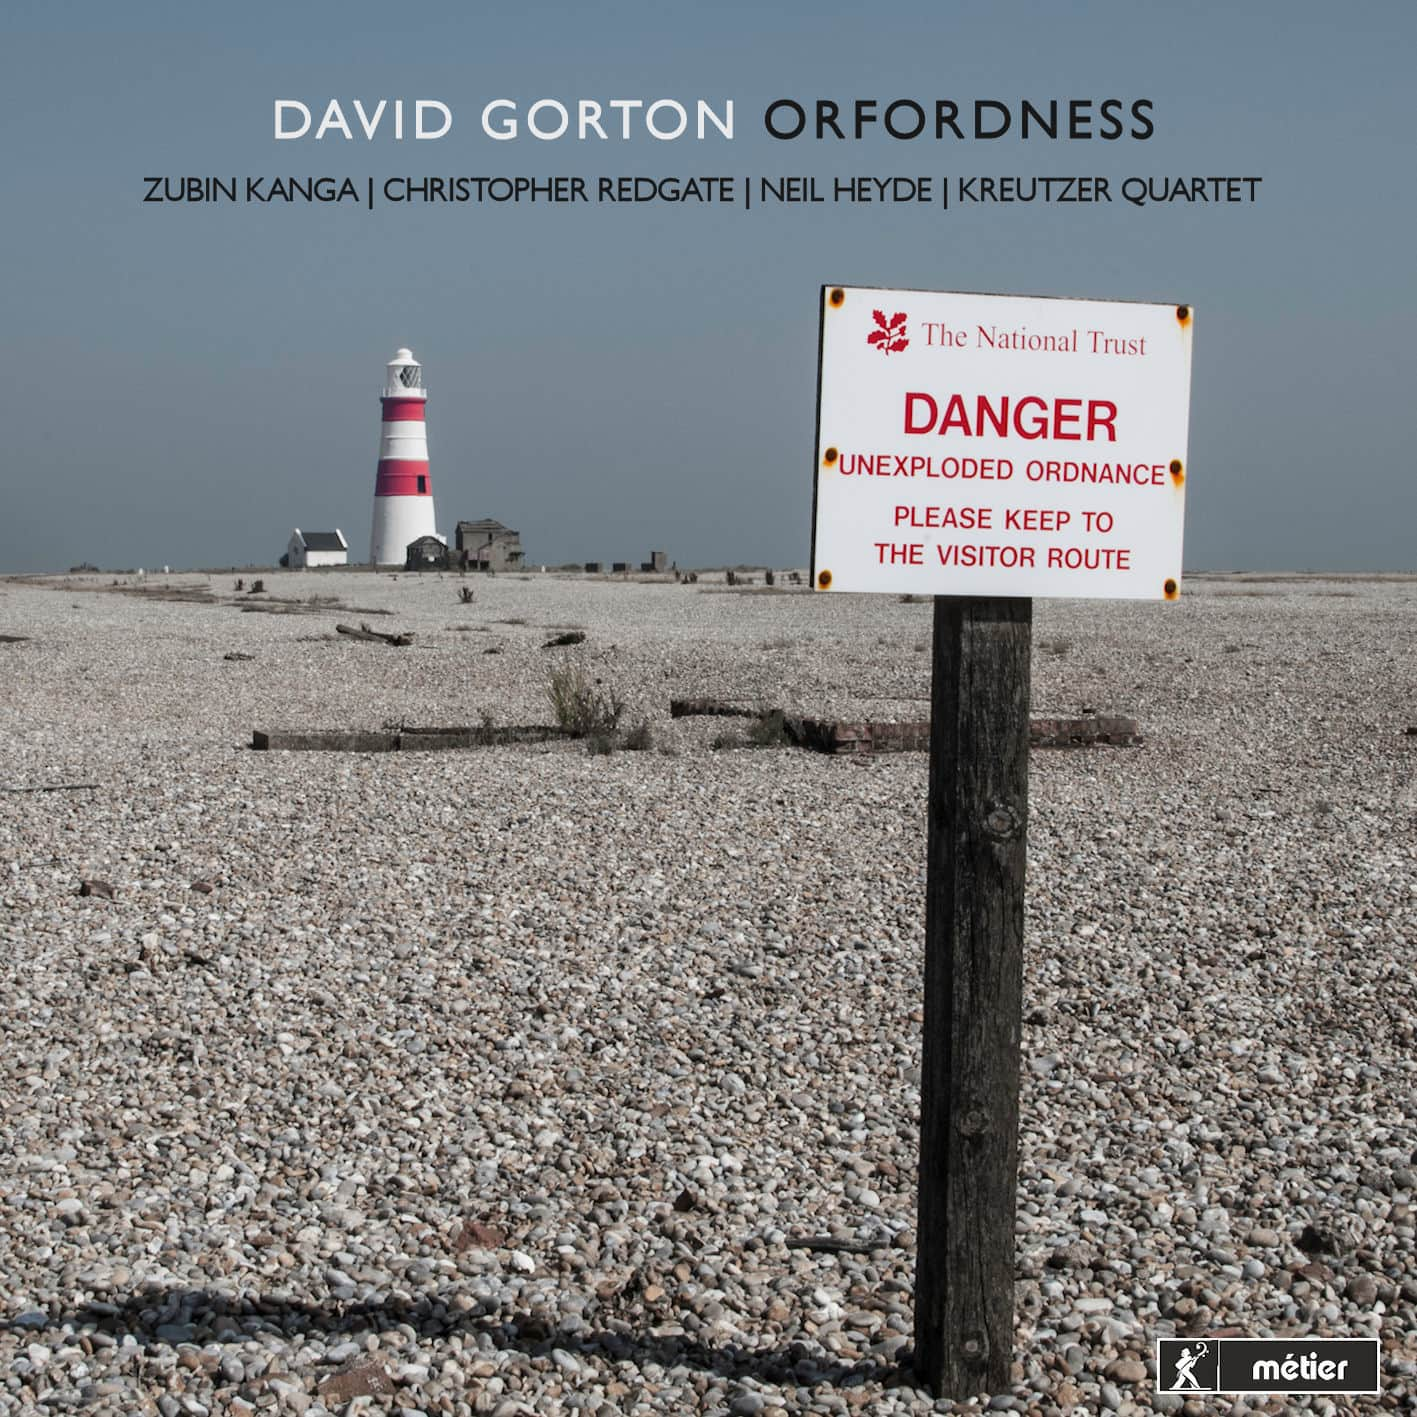 Orfordness: Music by David Gorton